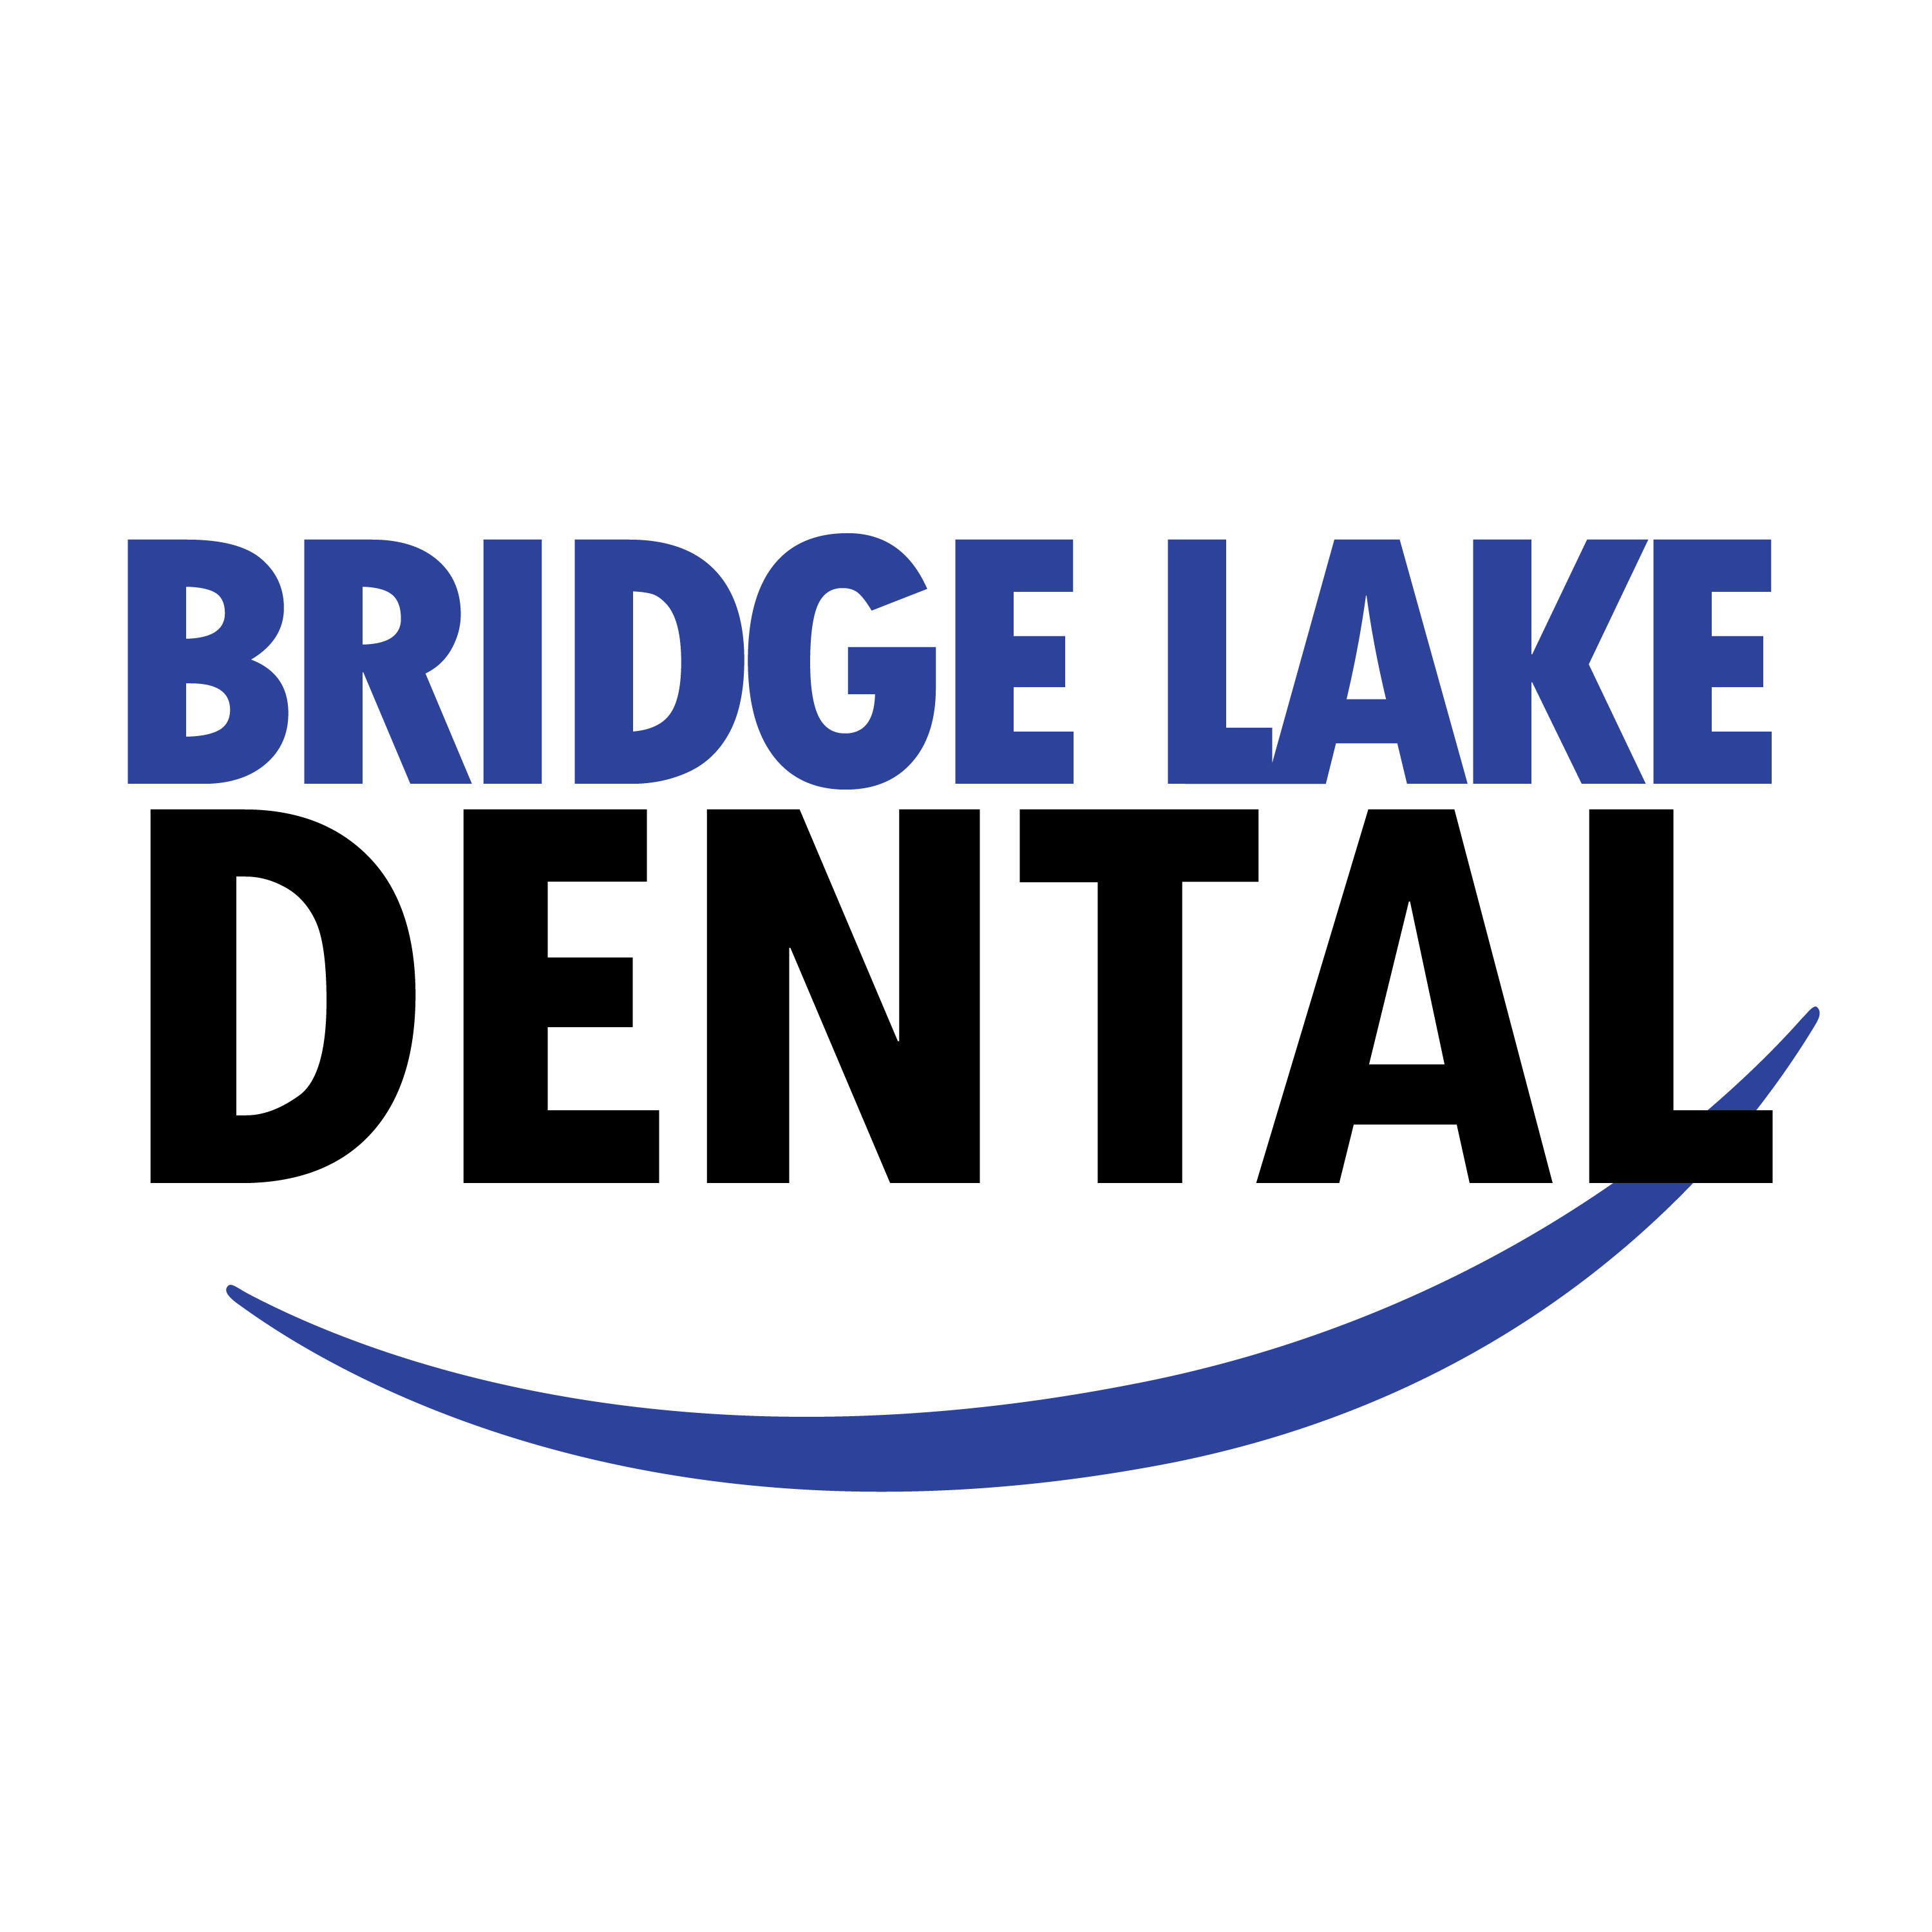 Bridge Lake Dental image 1